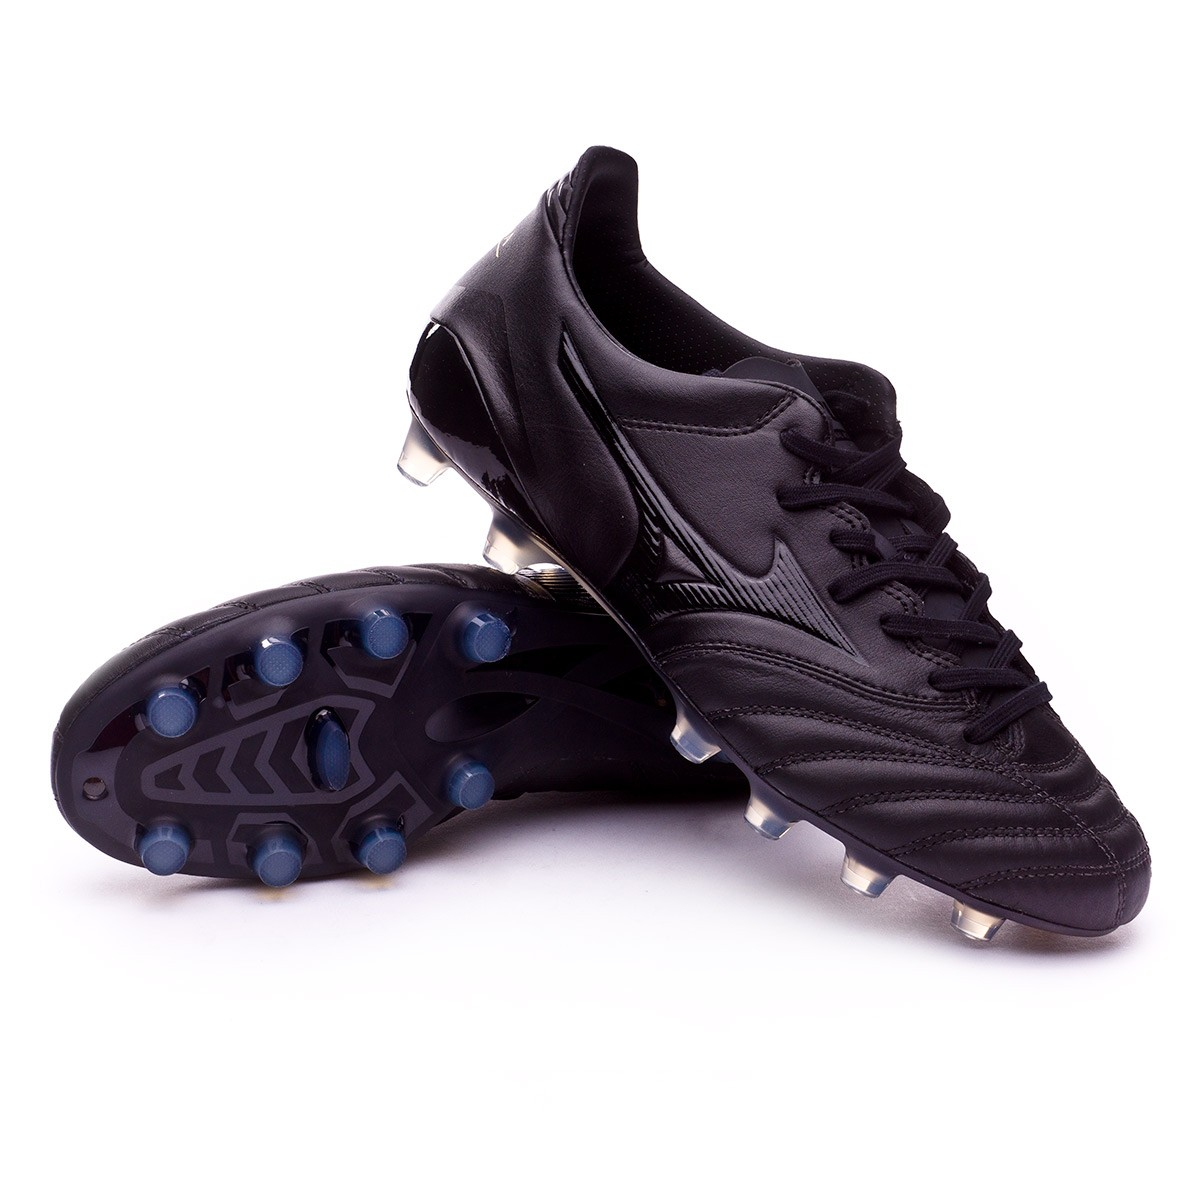 factory price 98059 3344e Football Boots Mizuno Morelia NEO KL II MD Black-Black-Black - Football  store Fútbol Emotion